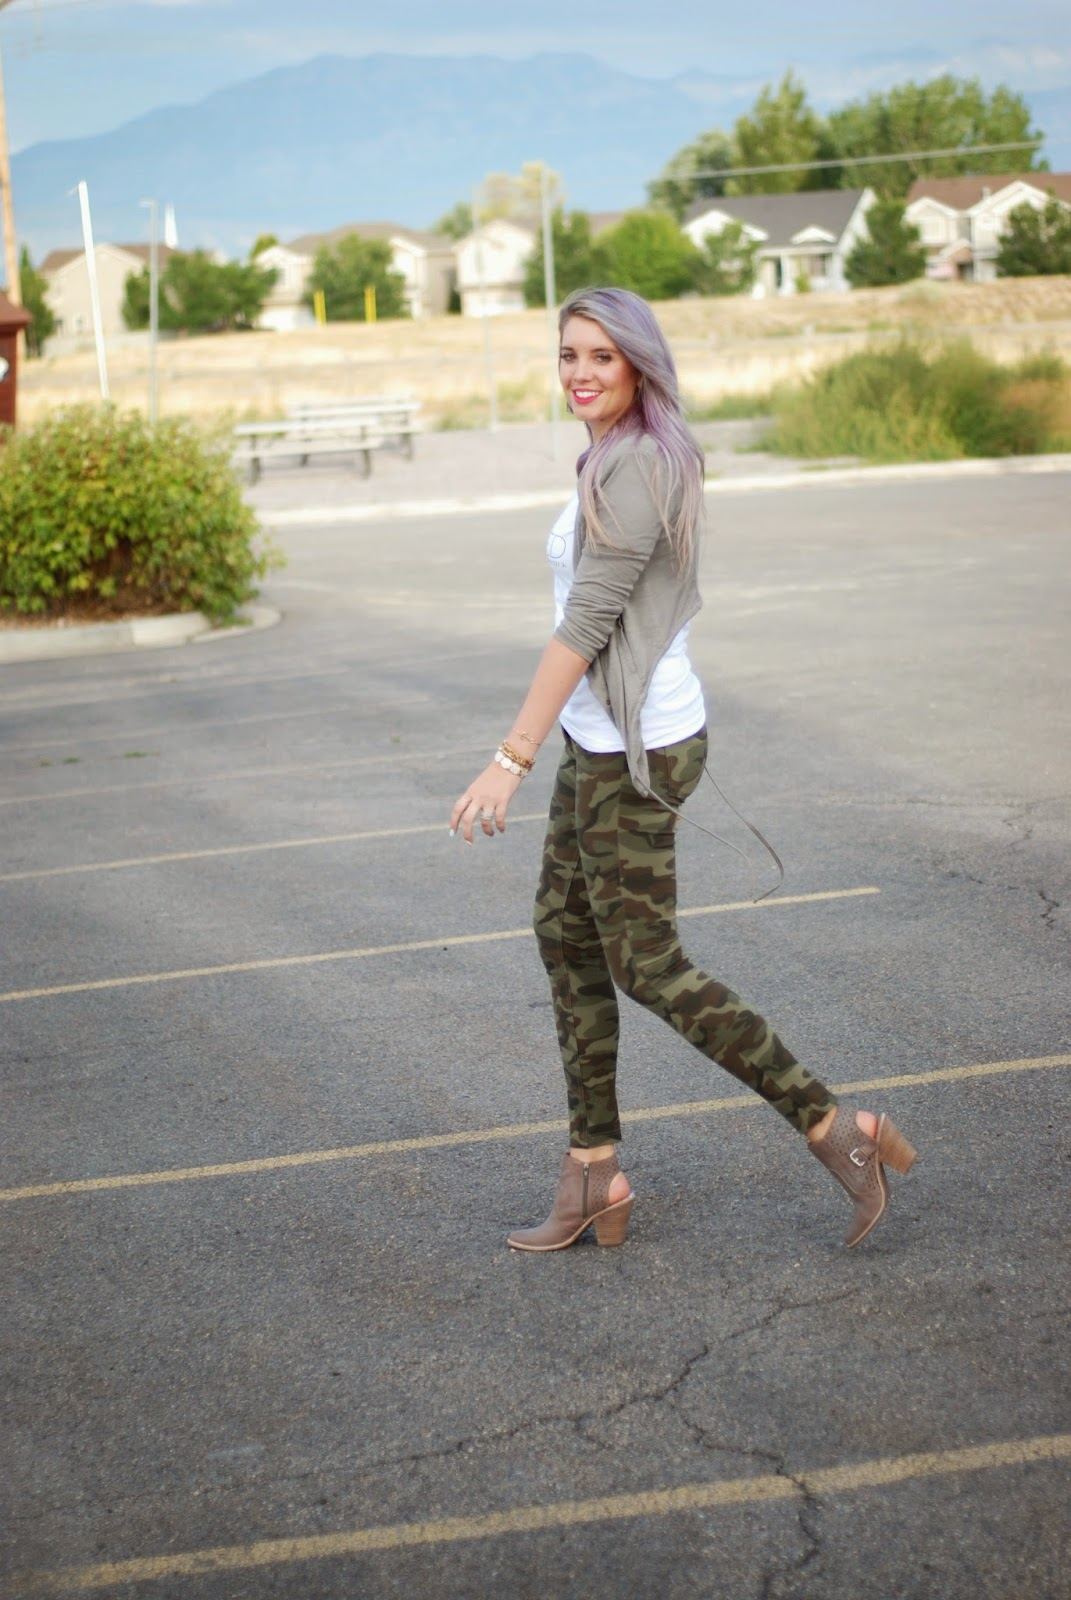 Lavender Hair, Army Pants